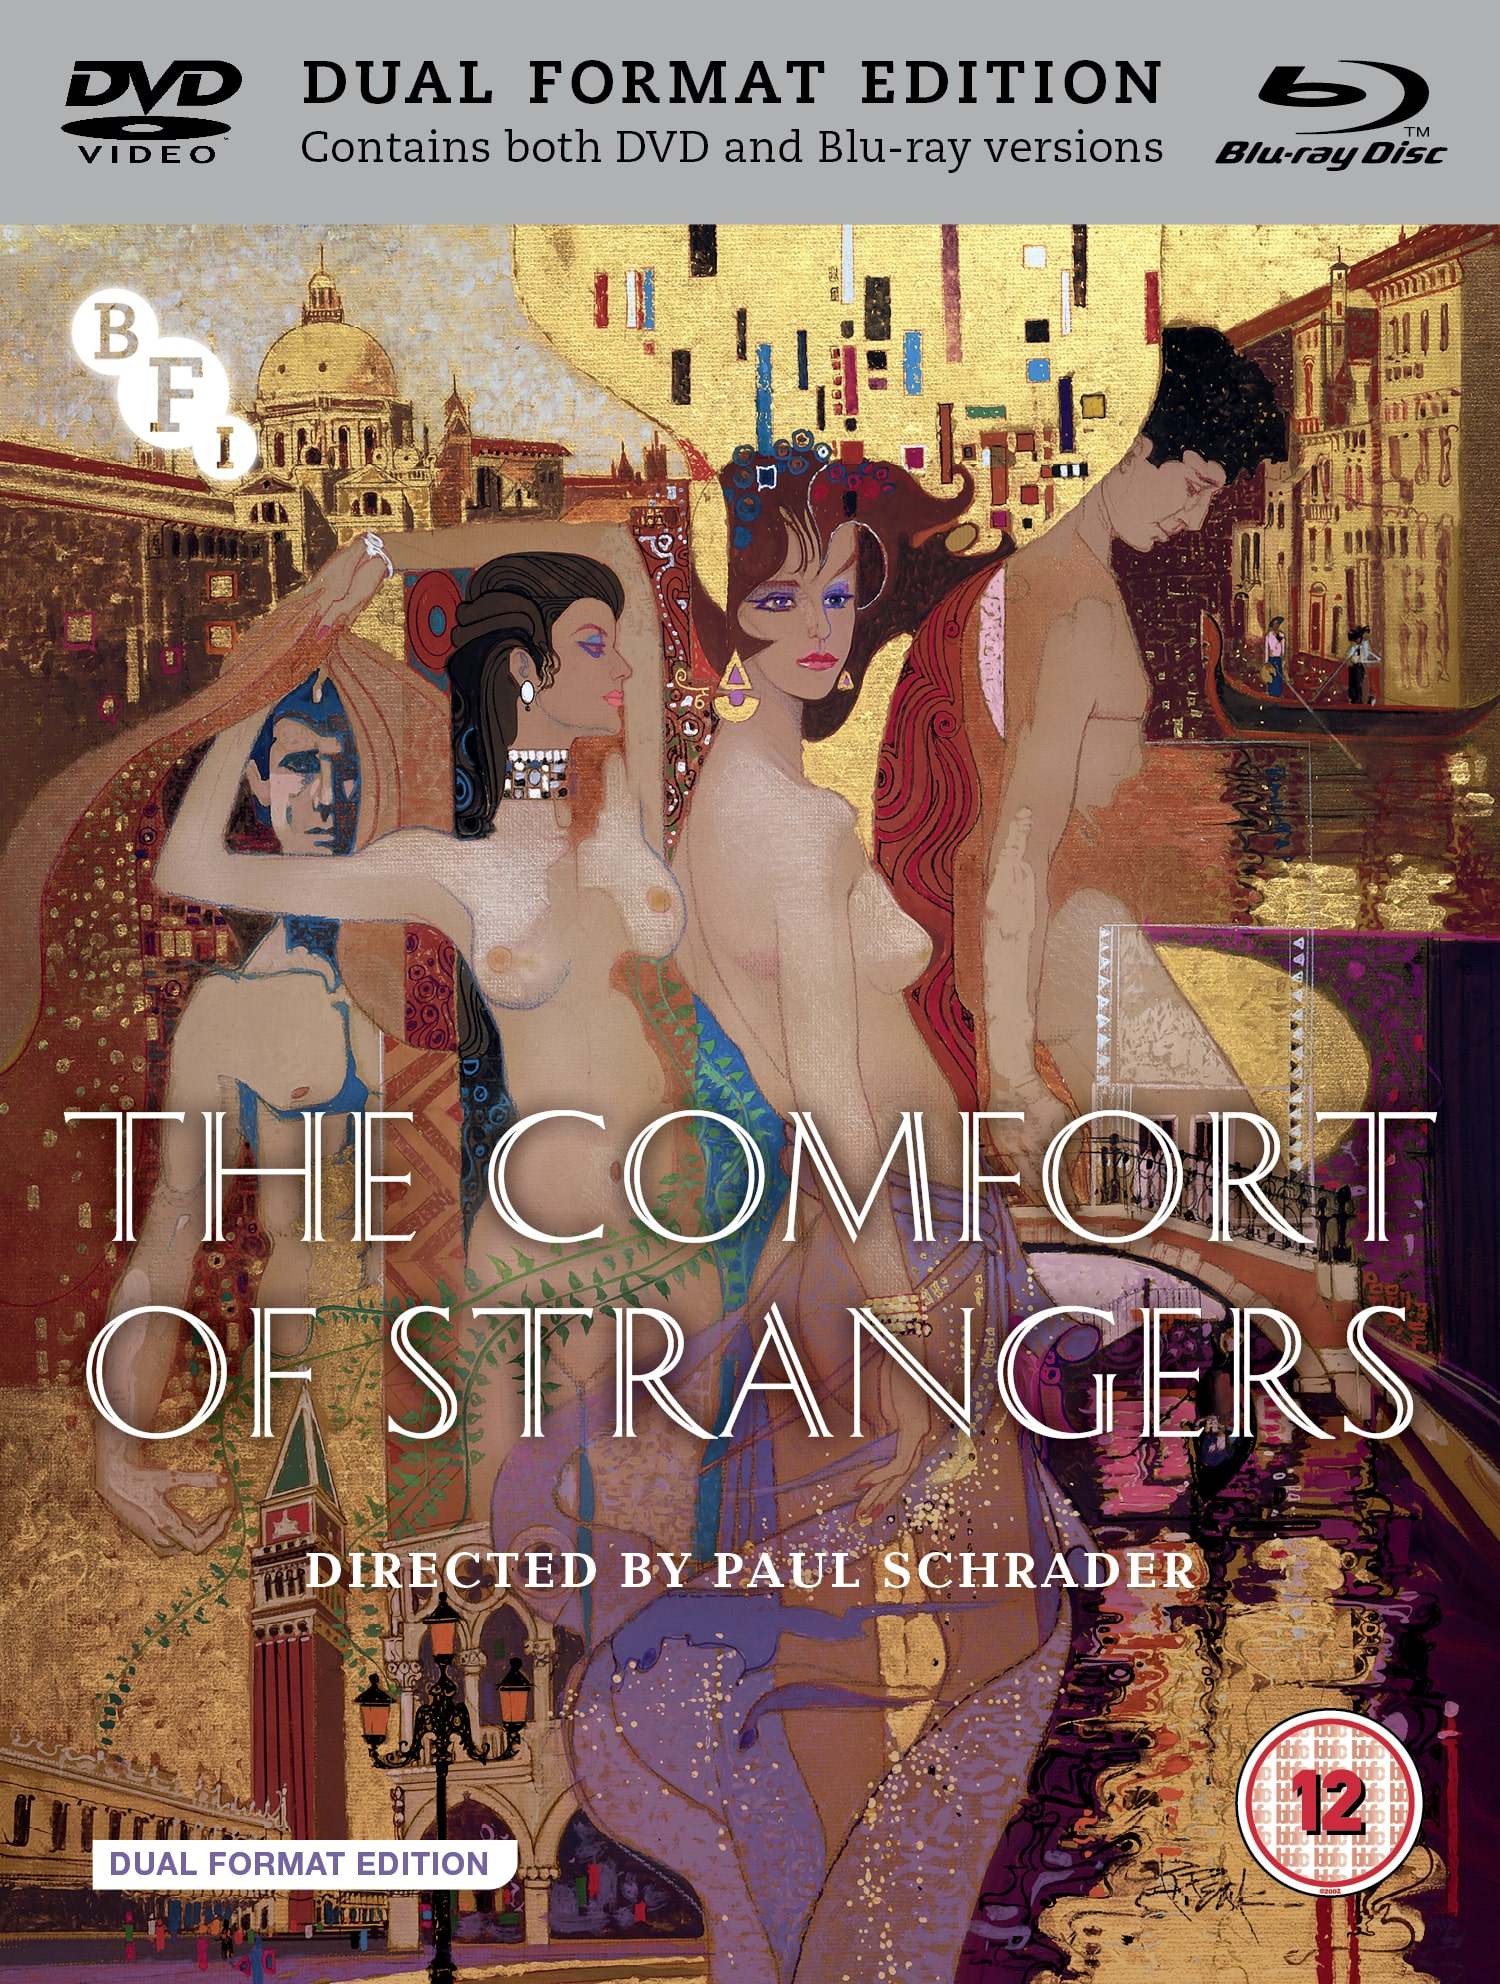 Buy PRE-ORDER The Comfort of Strangers (Dual Format Edition)